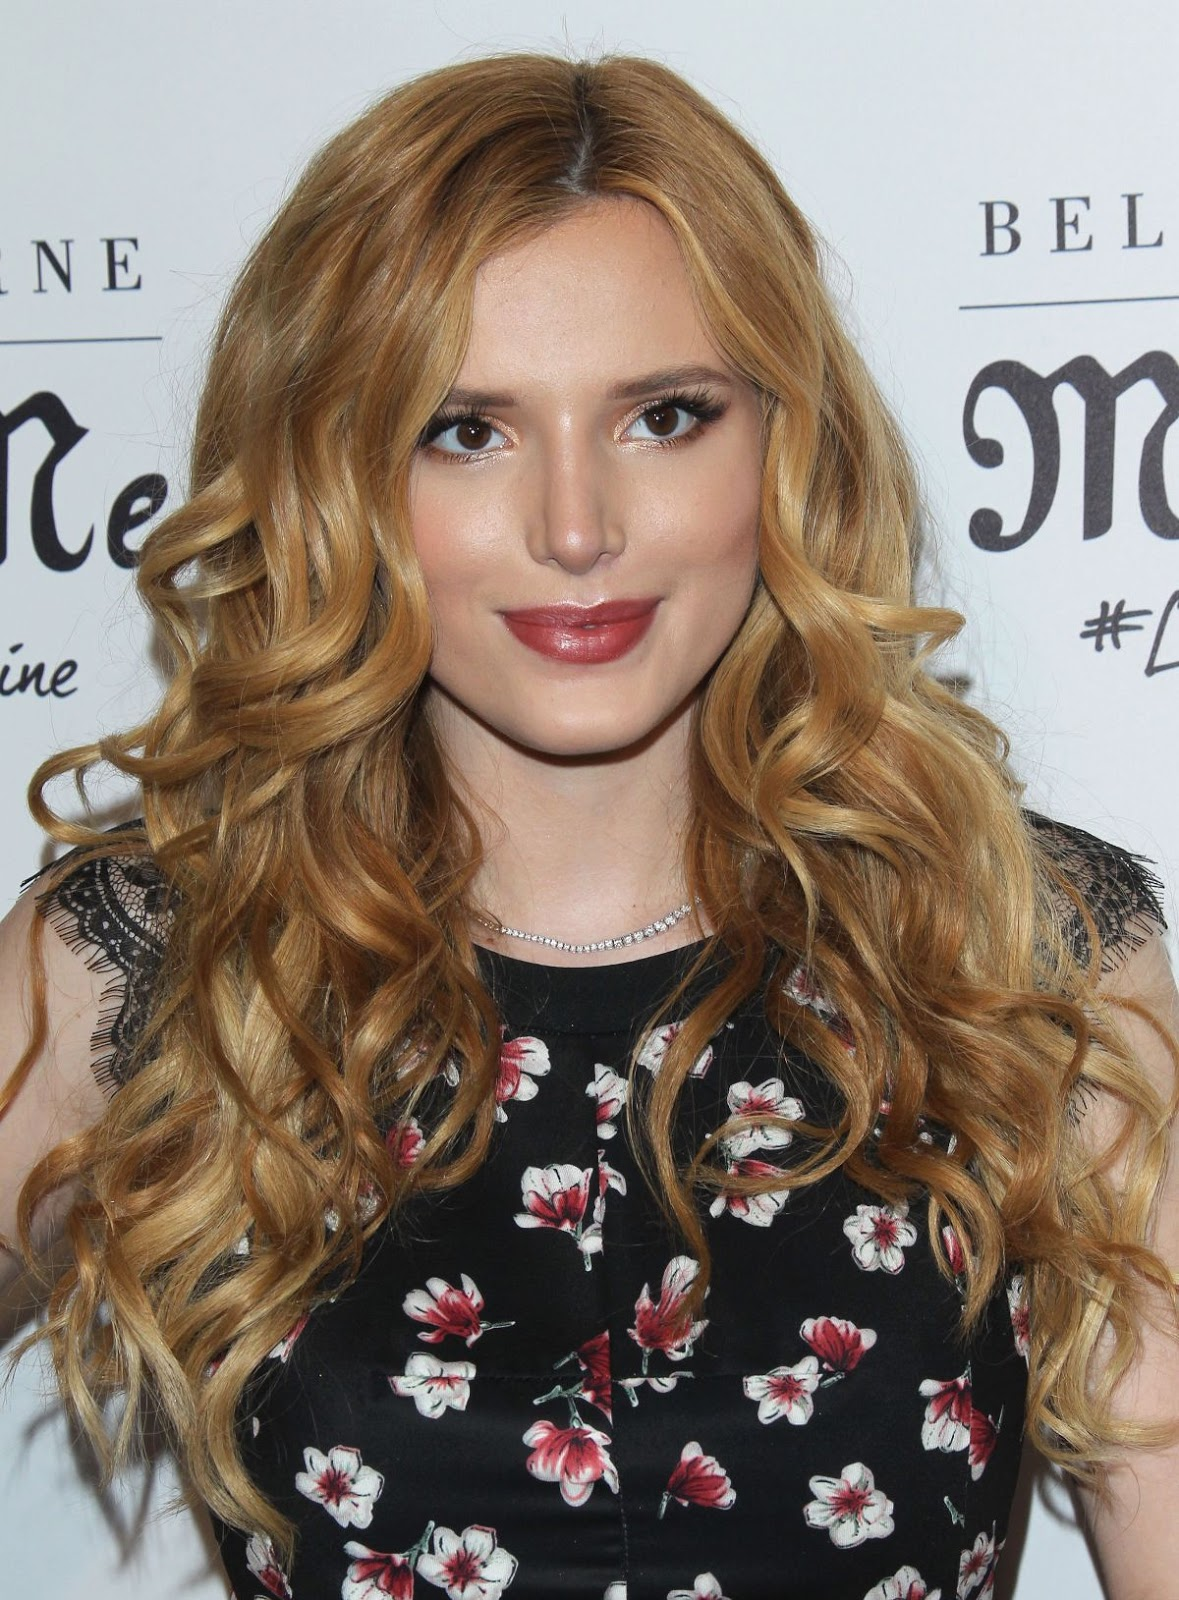 Bella Thorne at Miss Me and Cosmopolitan's Spring Campaign Launch